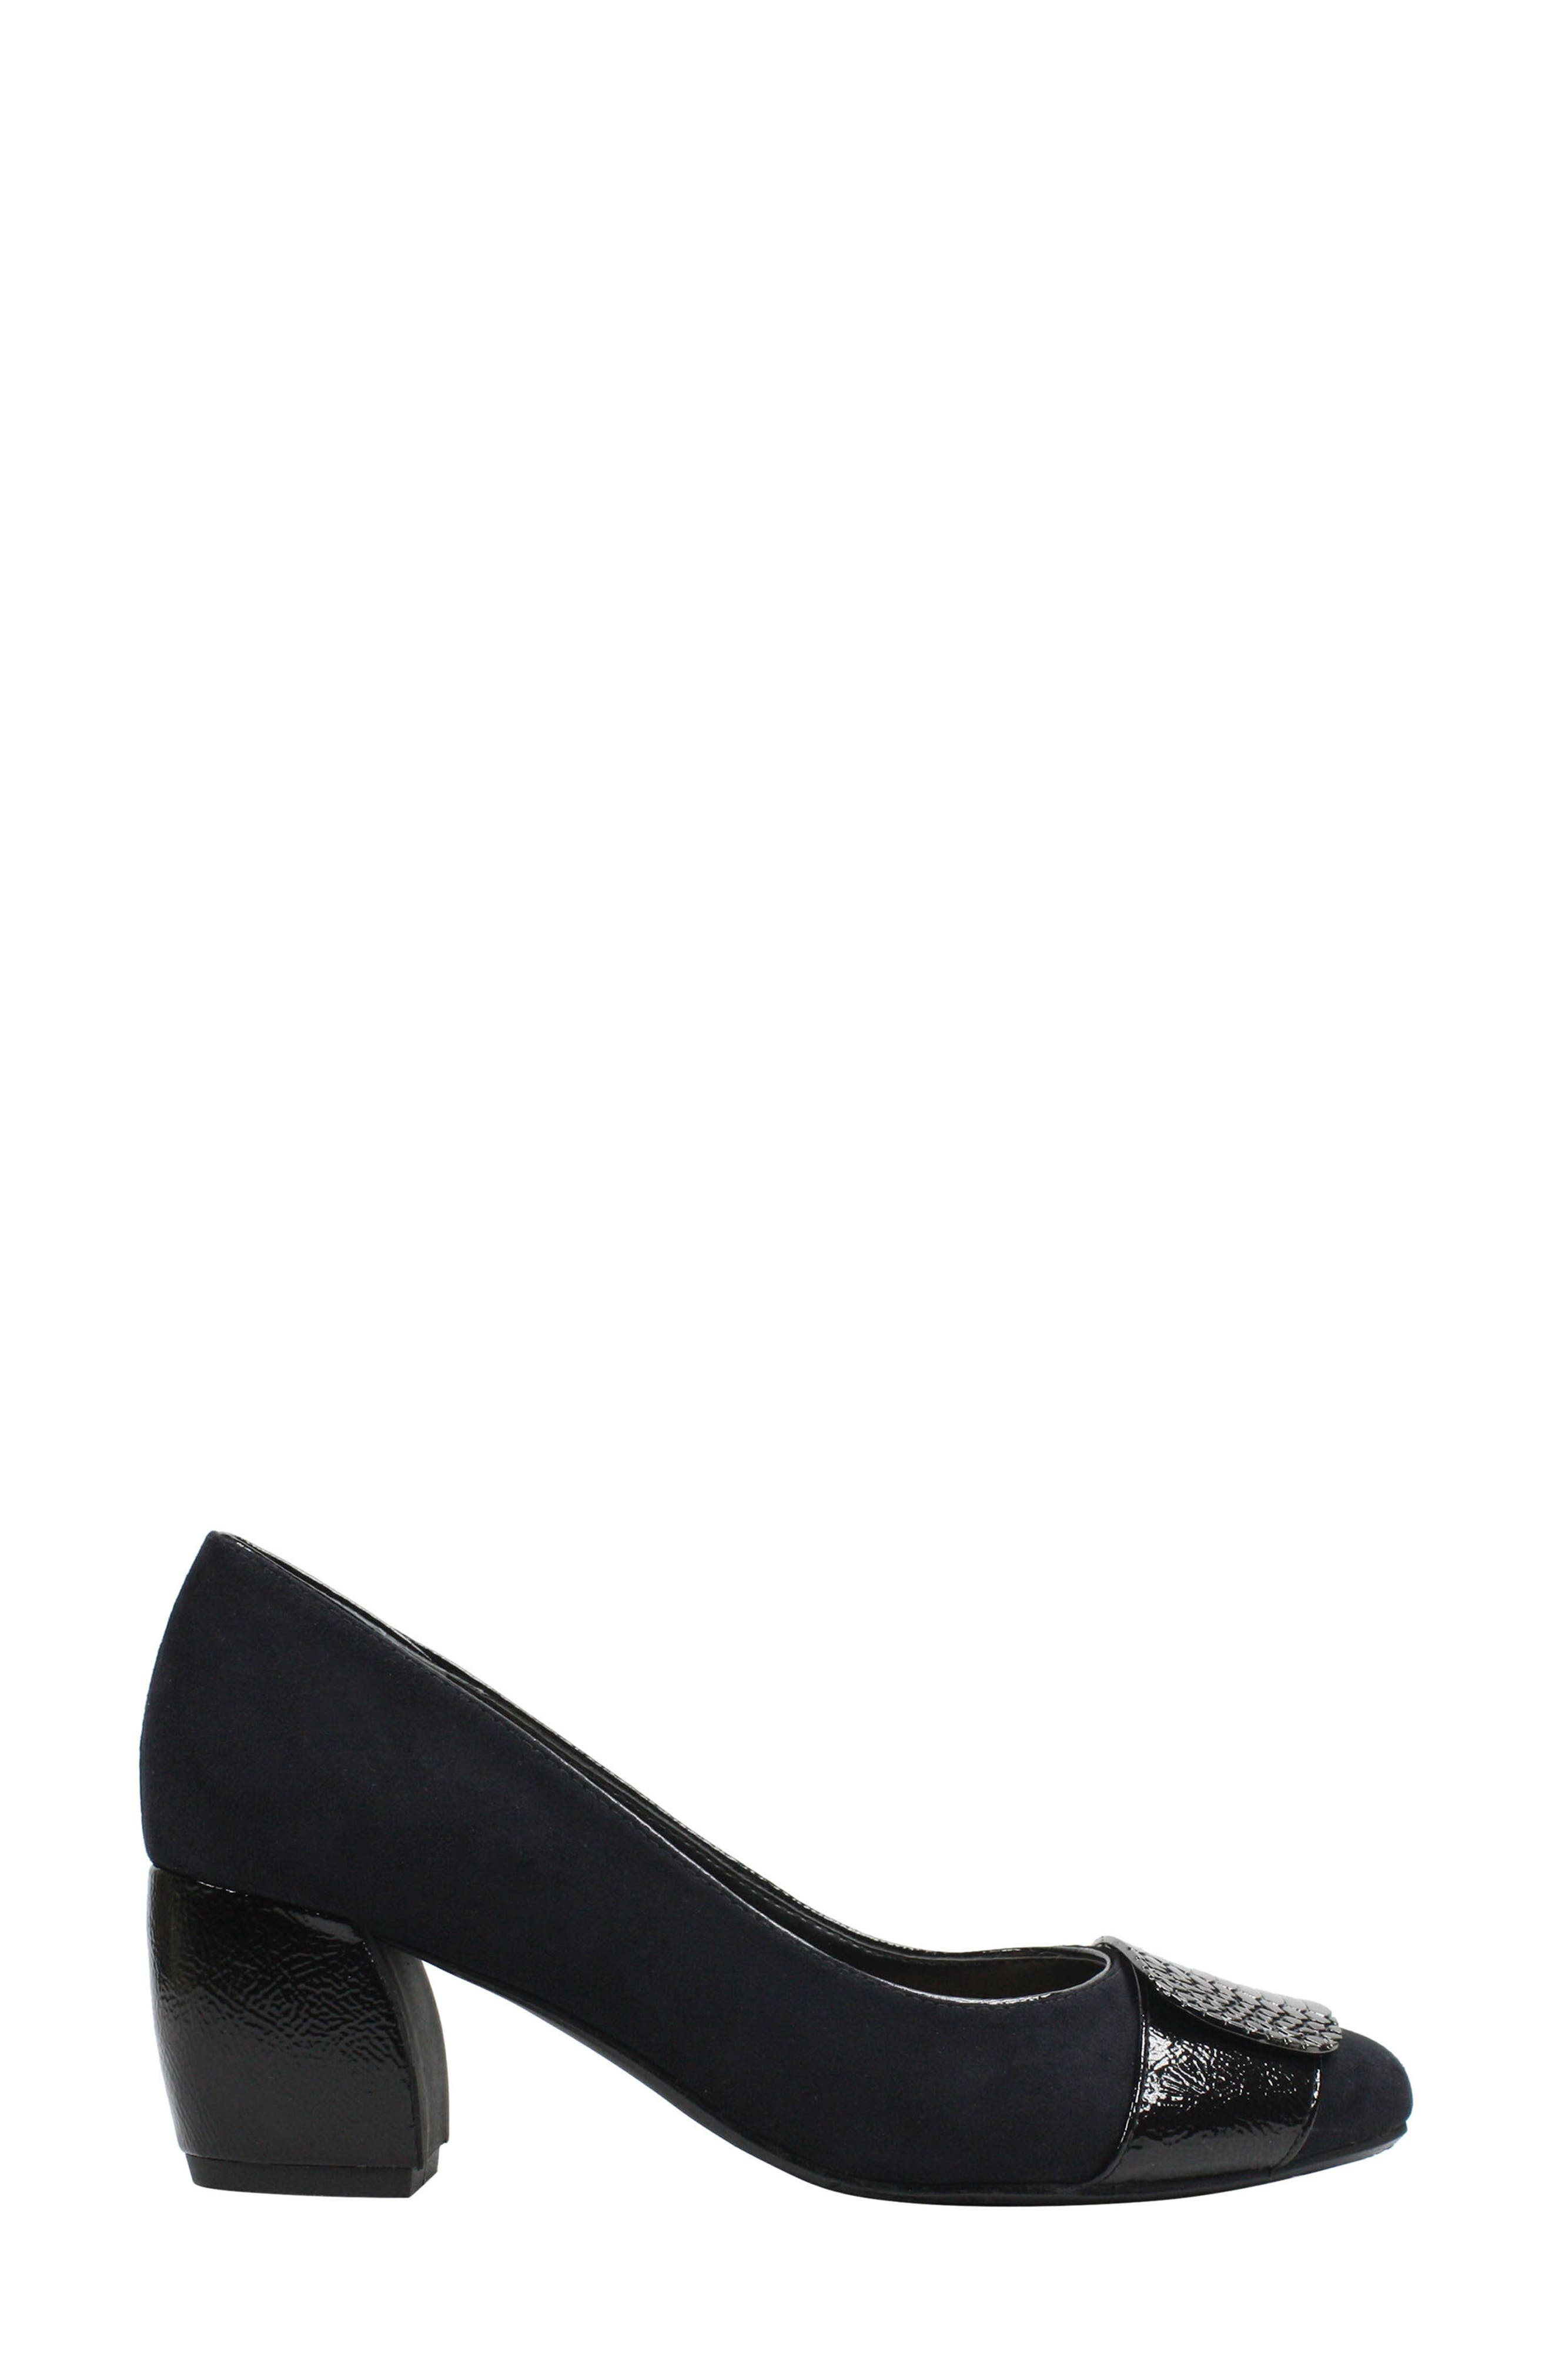 Langeley Pump,                             Alternate thumbnail 3, color,                             BLACK FABRIC